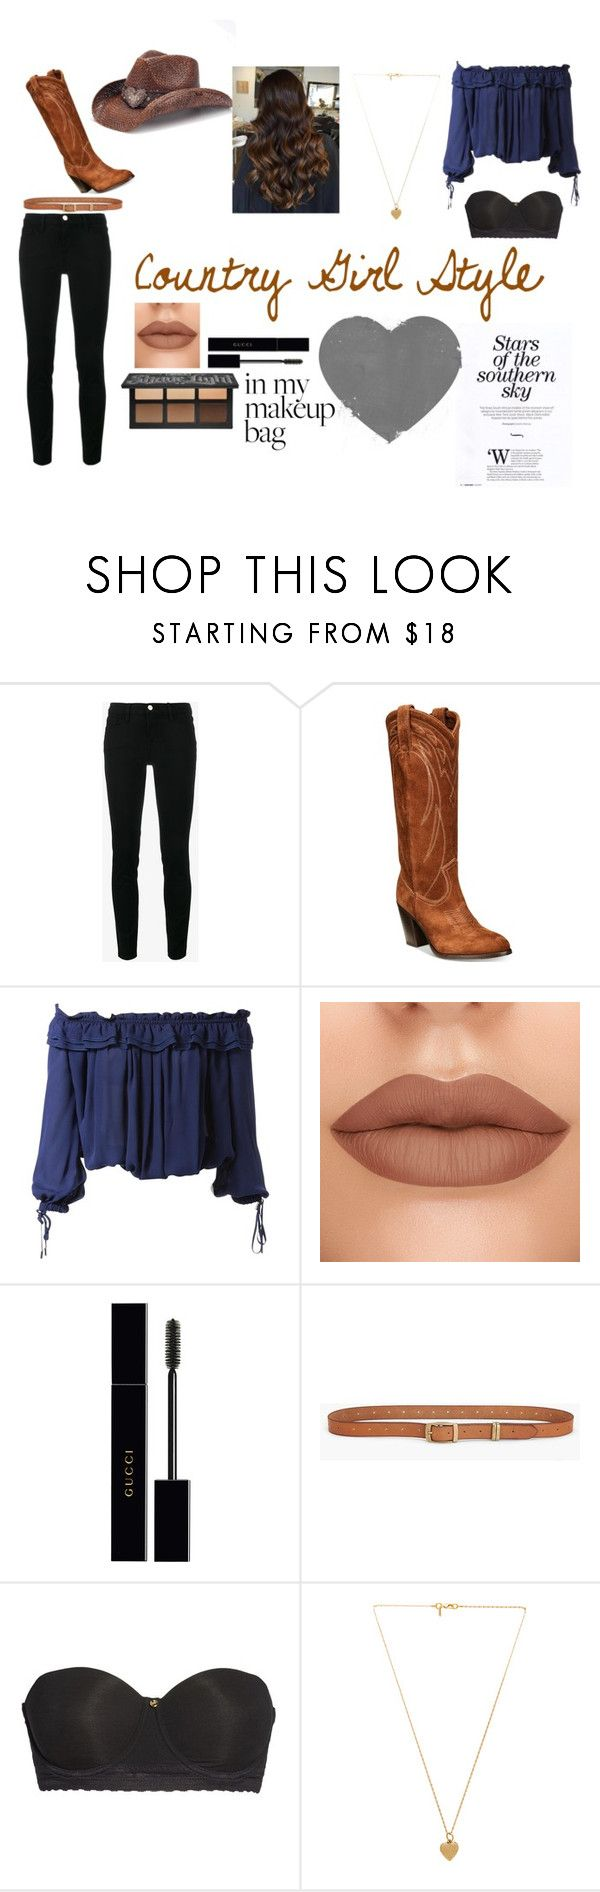 """""""Country Girl Style"""" by hailey-2005 on Polyvore featuring Frame, Frye, Dsquared2, Gucci, Lucky Brand, Natori, Vanessa Mooney, Peter Grimm and country"""